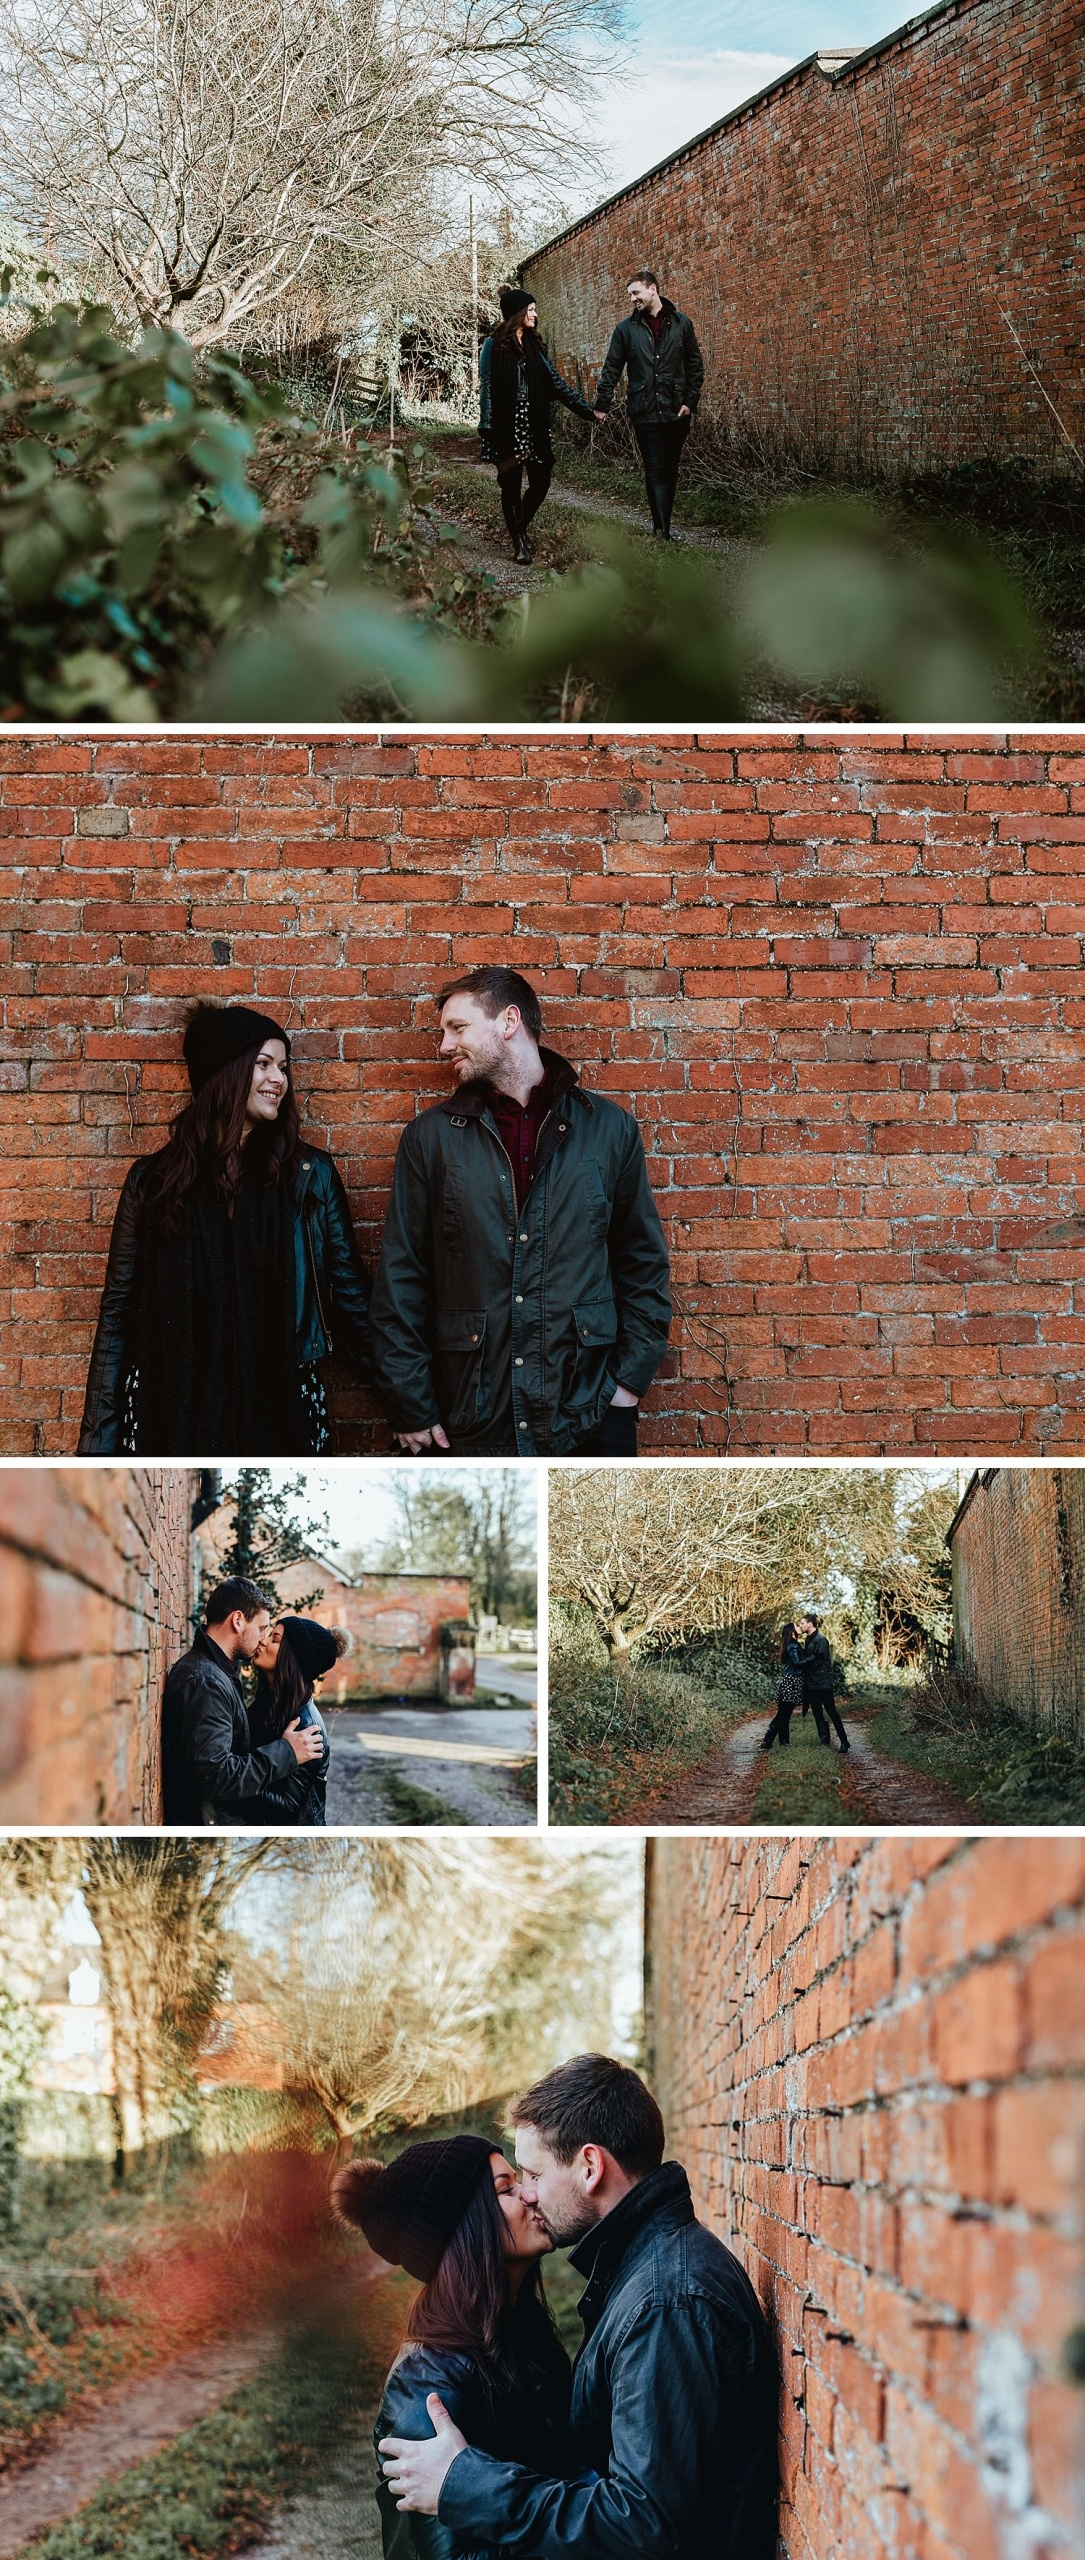 wedding-photographer-staffordshire-sugnall-garry-hayley